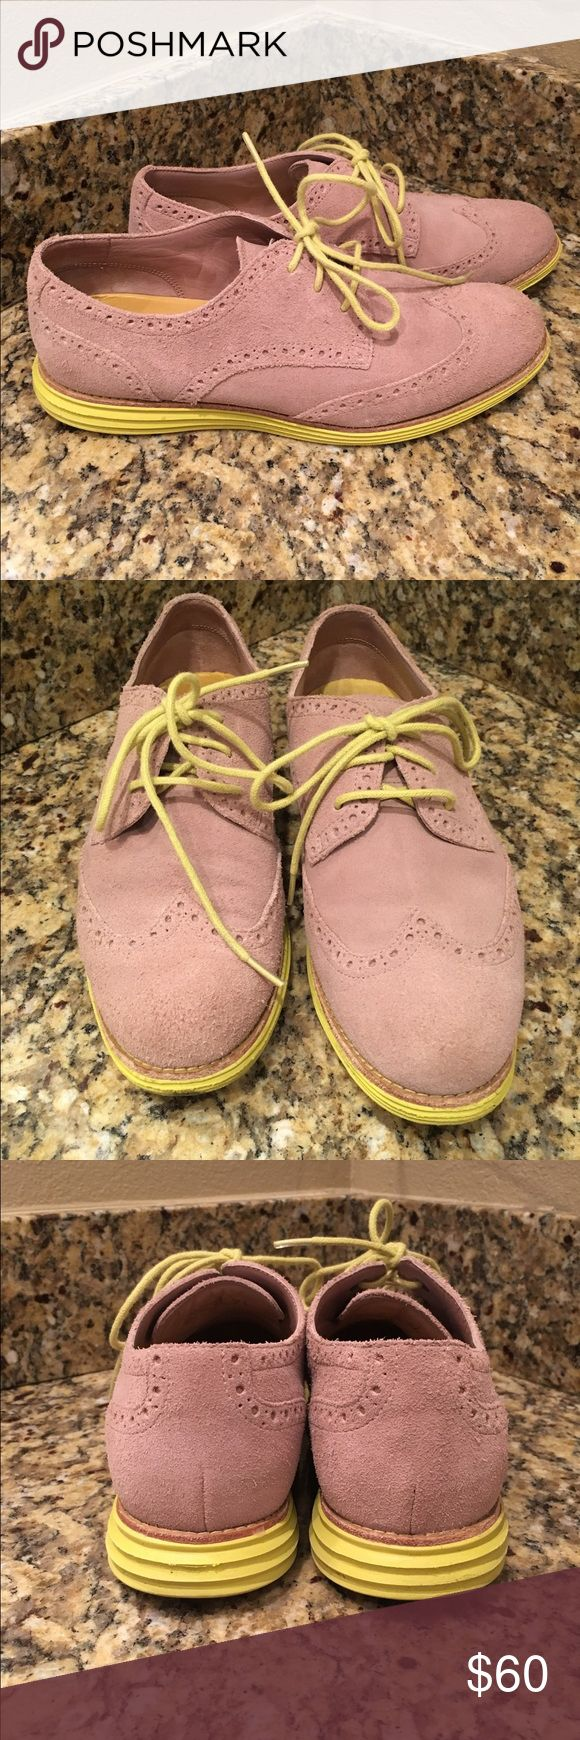 Cole Haan Lunargrand Suede Oxford Shoes Super cute suede oxford Lunargrand Cole-Haan shoes.  In great condition- have only worn a handful of times.  Size 7 1/2. I don't have the original box- but stored in a clear plastic shoe box while not worn. Cole Haan Shoes Flats & Loafers